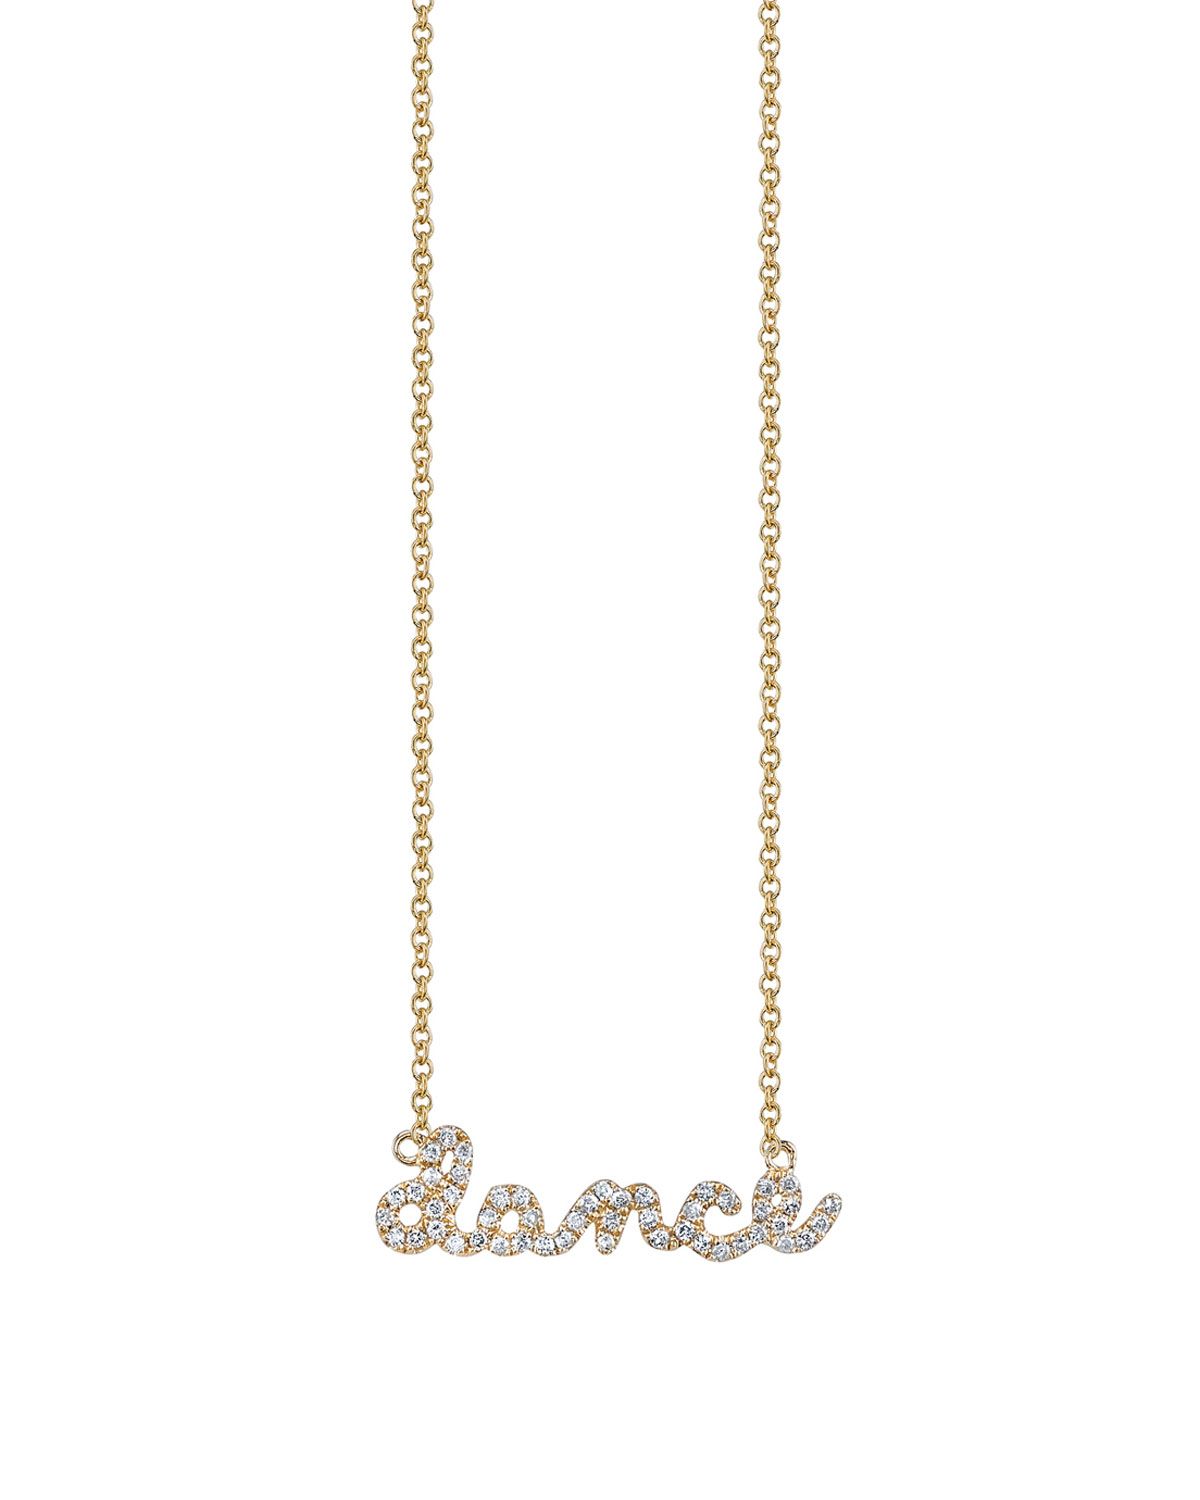 Sydney Evan Jewelry 14k Yellow Gold Dance Script Necklace, Youth 7-14